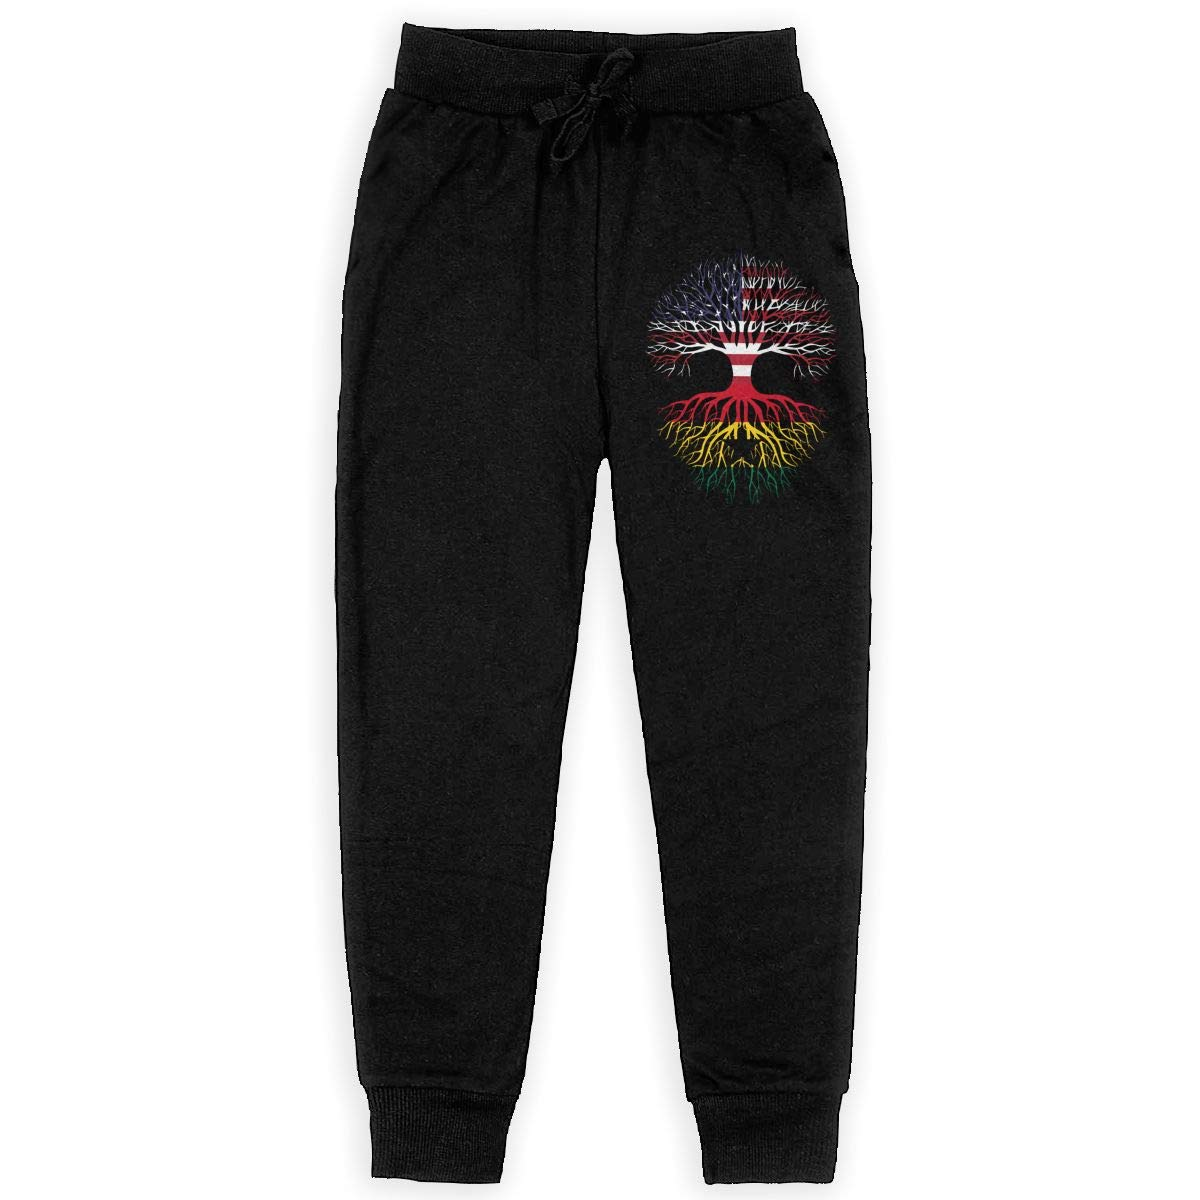 Boys Sweat Pant for Teen Girls WYZVK22 American Grown Ghana Roots Soft//Cozy Sweatpants